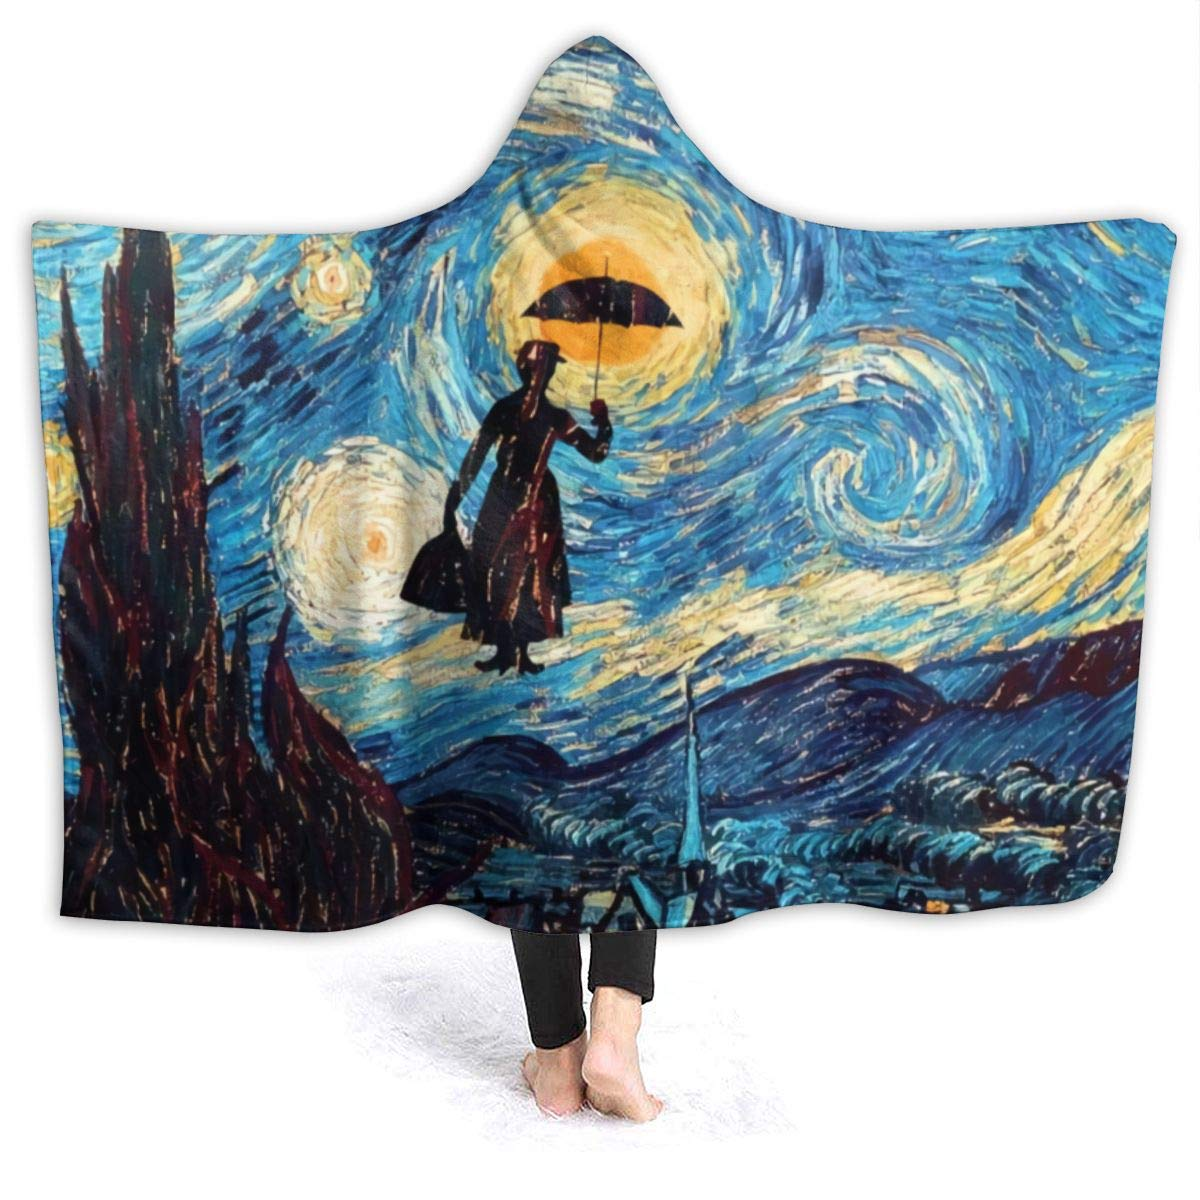 Zul Flannel Fleece Ombre Throw Blanket for Couch Super Soft Cozy Microfiber Couch Blanket All Season, Mary Poppins 60x50 Inch